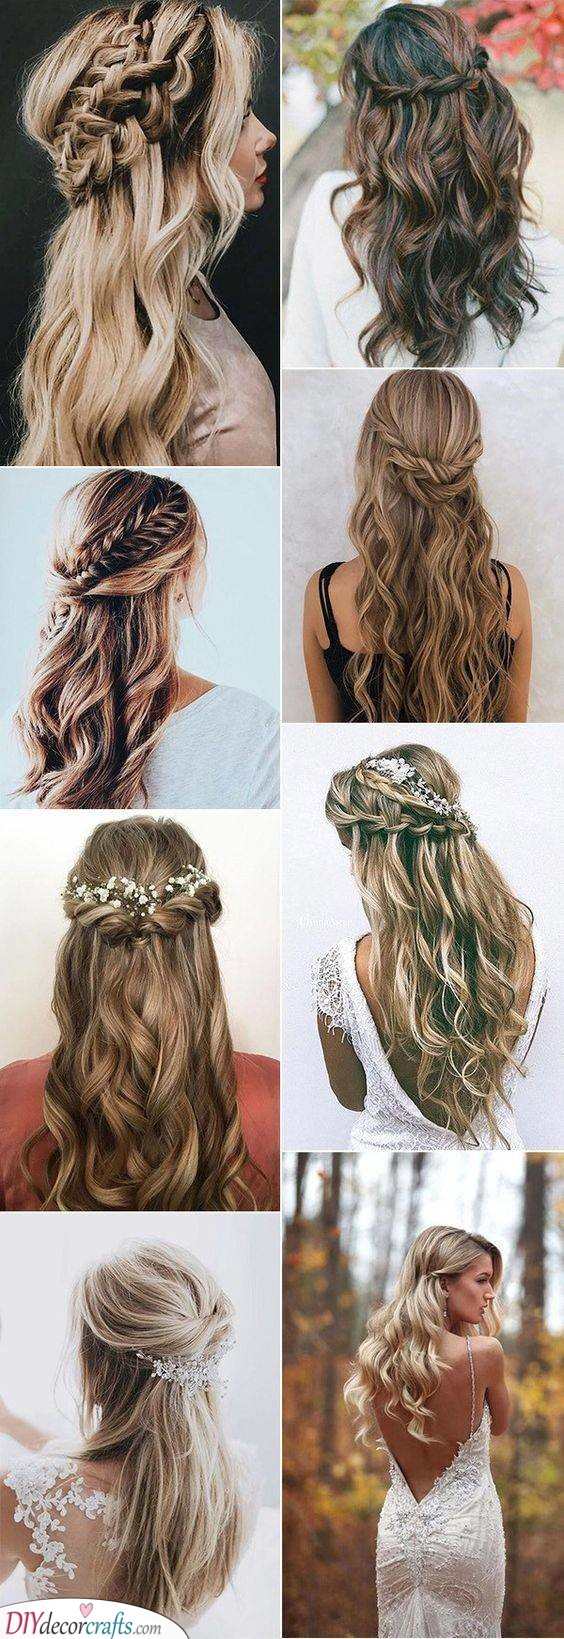 Beautiful Braids - Curly Hairstyles for Long Hair